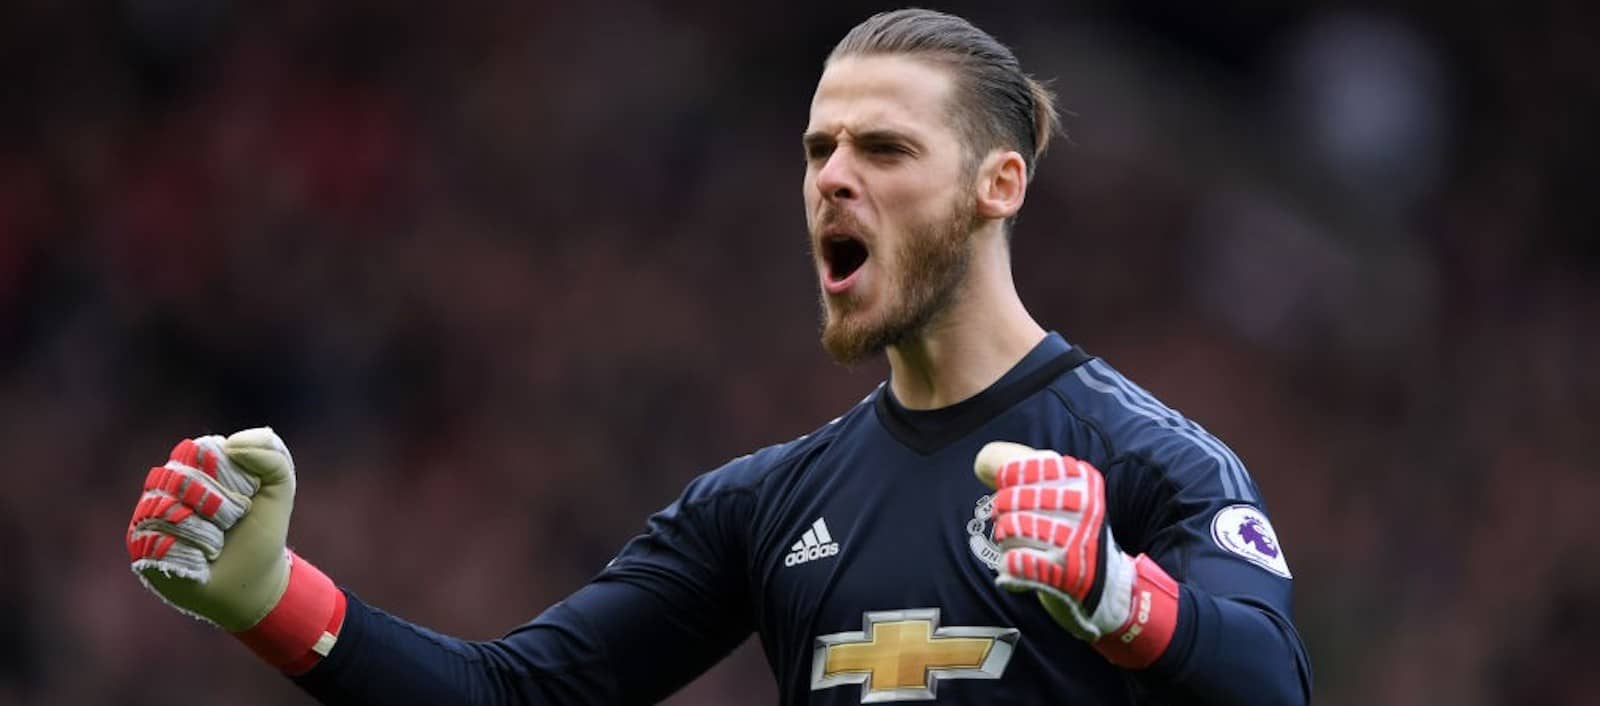 "Jose Mourinho hails David de Gea as ""the best"" after great save against Watford"